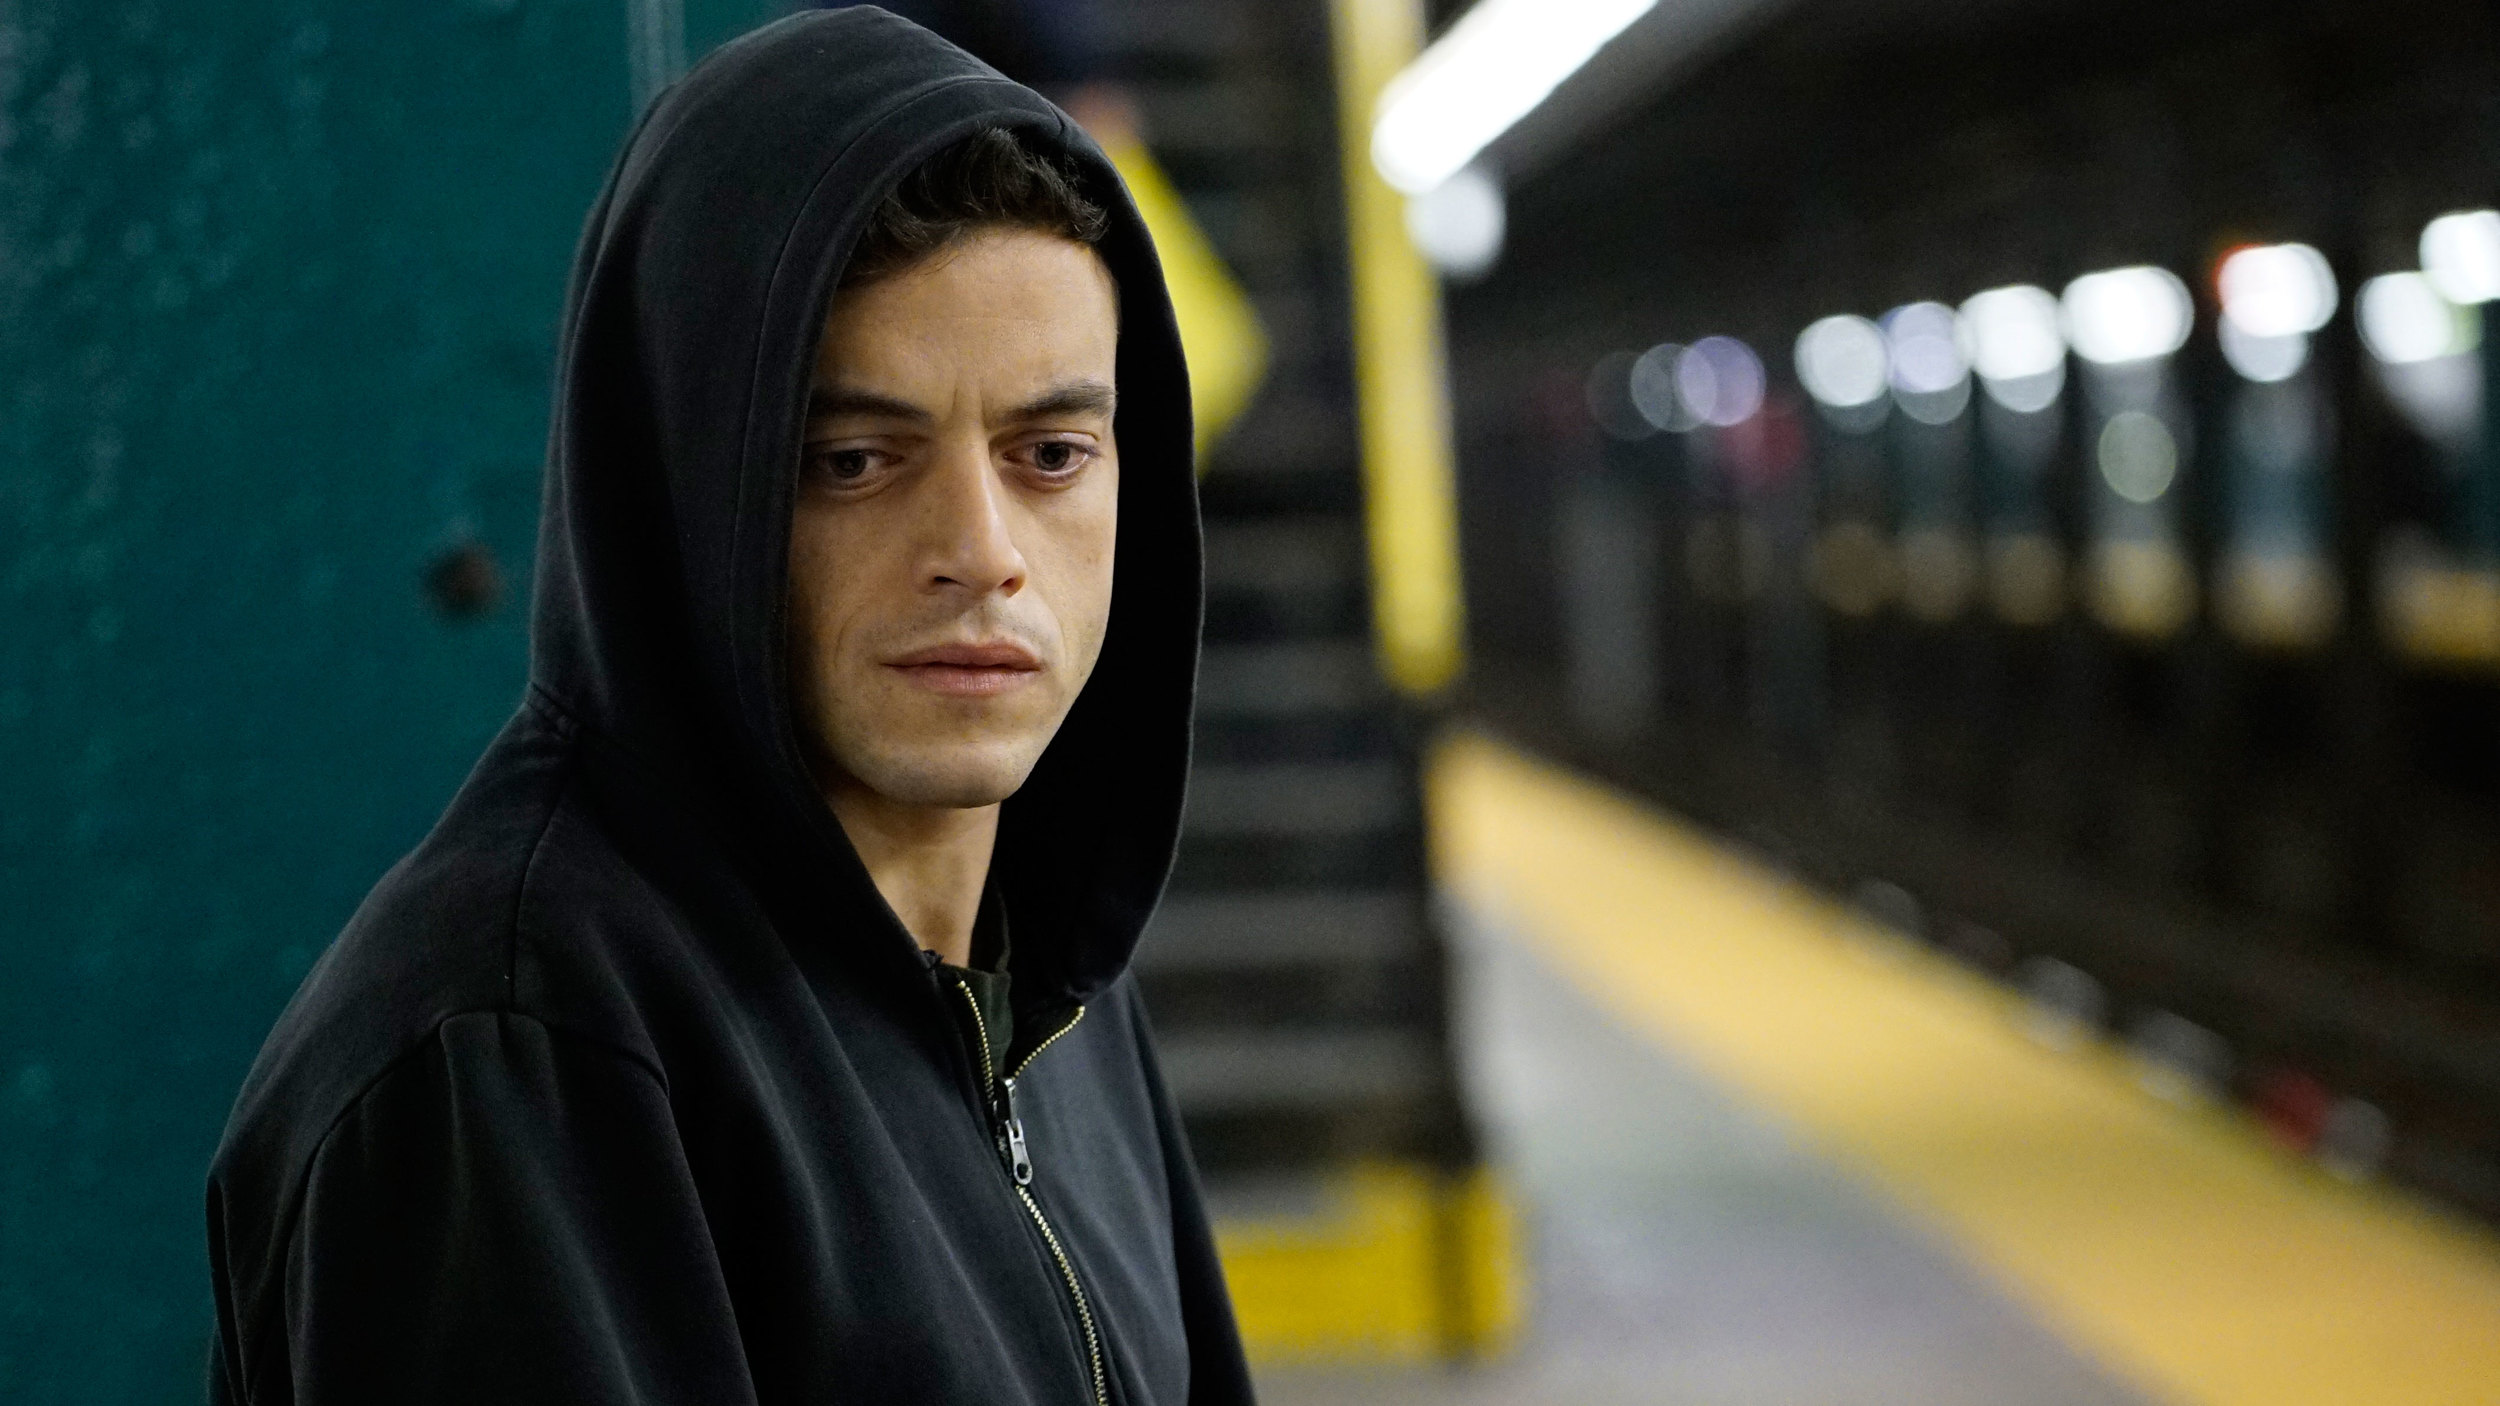 """""""What am I going to write about this week?"""" - This week on Mr. Robot, Elliot fumbles his way through the most dangerous internet playground of all - the Blogosphere."""